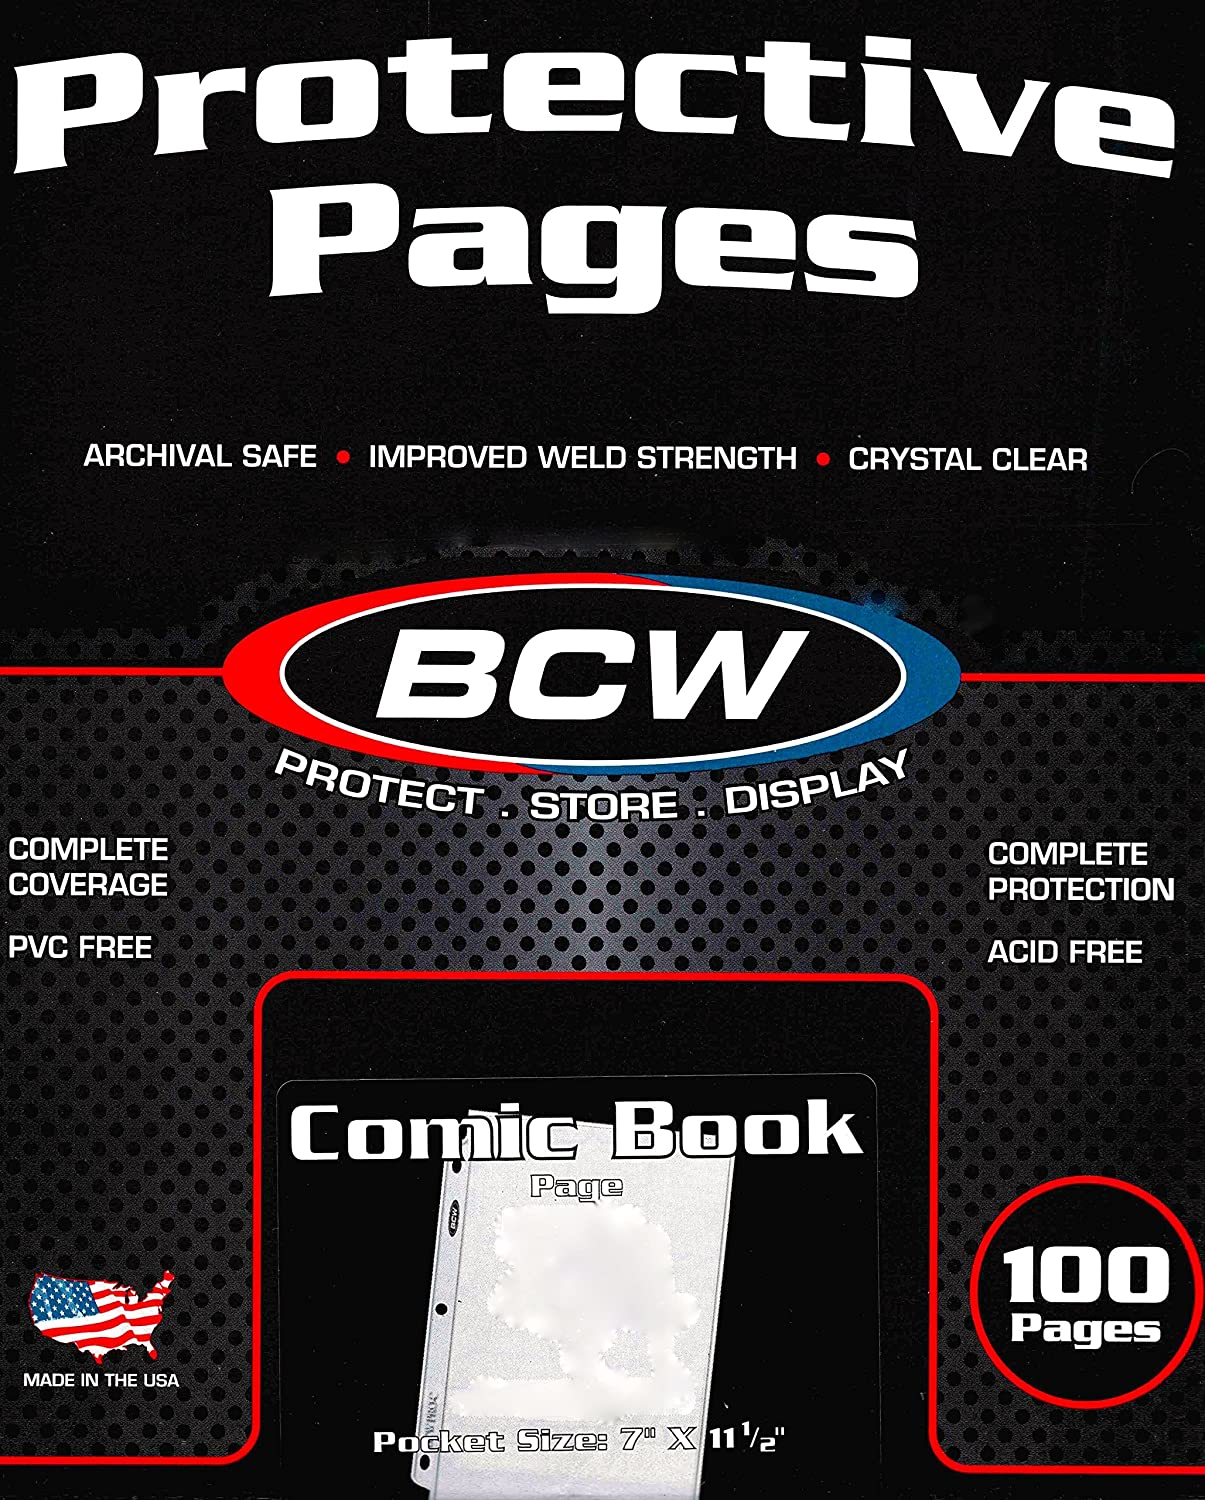 1 Pocket Comic Book Protection 20 Pages BCW Acid Free High Quality Safe Storage